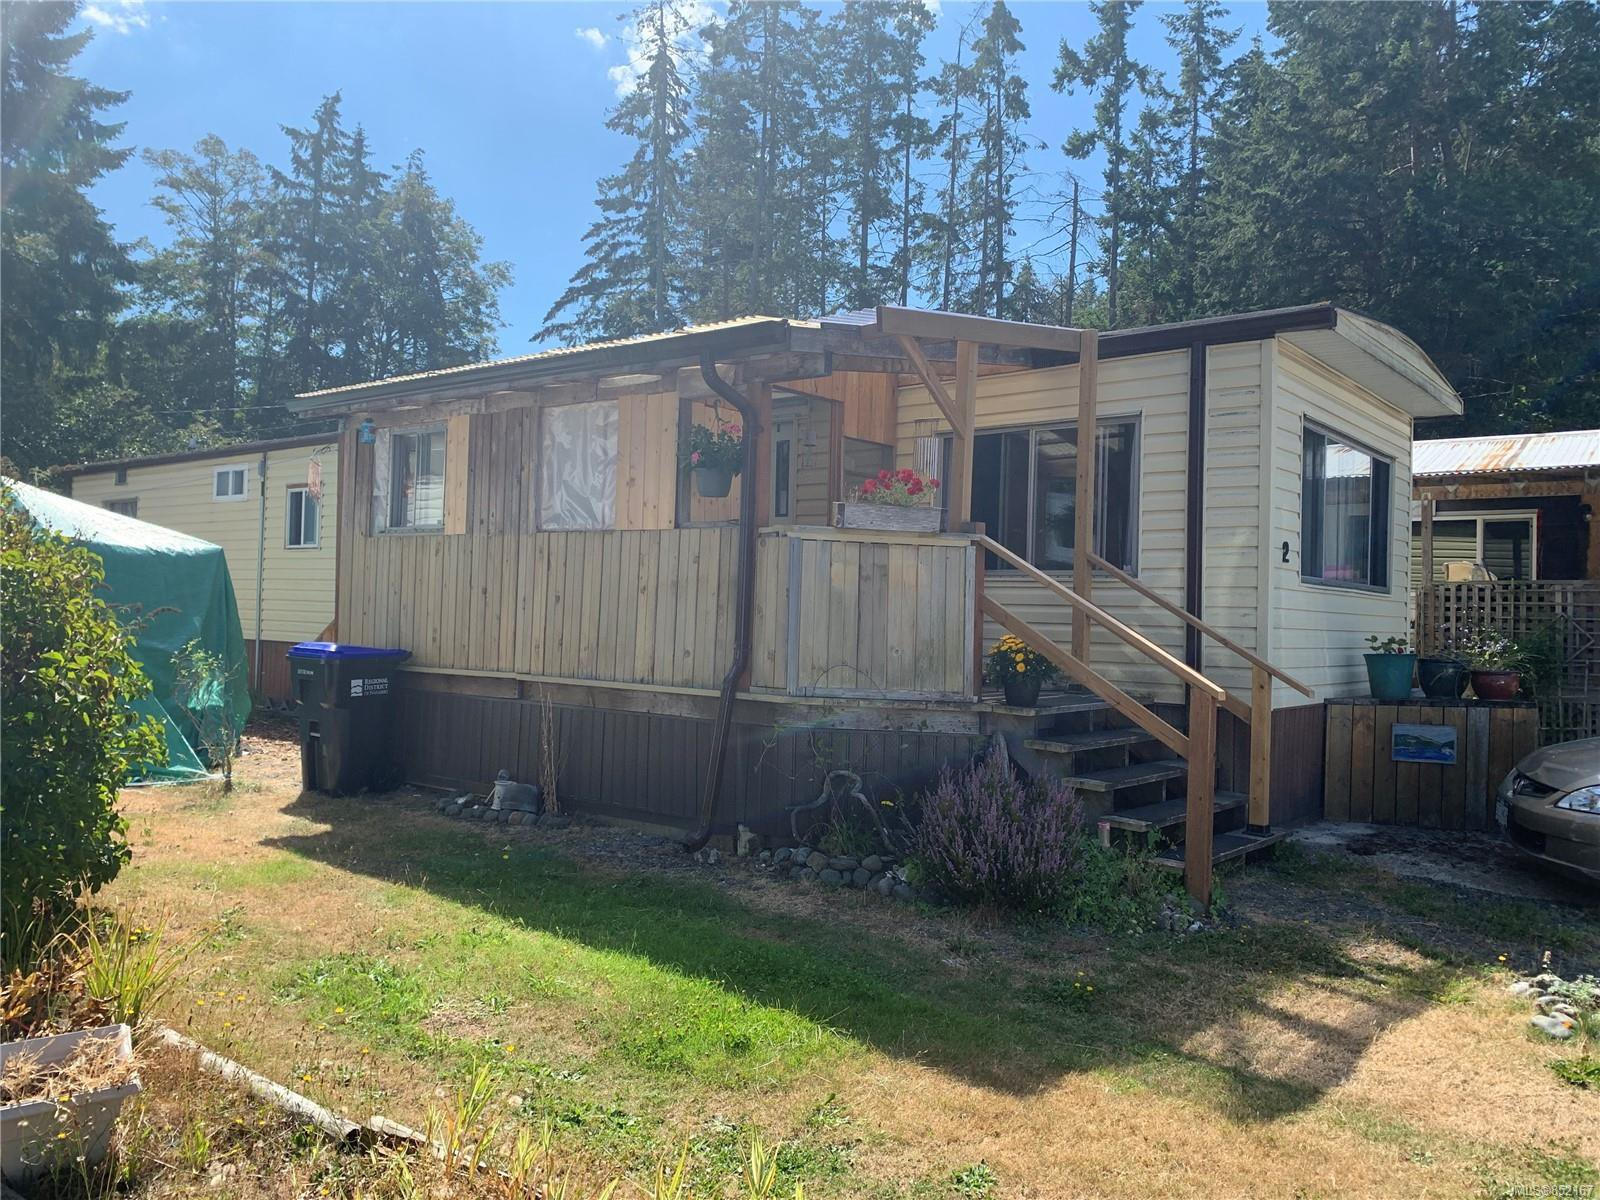 Main Photo: 2 882 Wembley Rd in : PQ Parksville Manufactured Home for sale (Parksville/Qualicum)  : MLS®# 852167